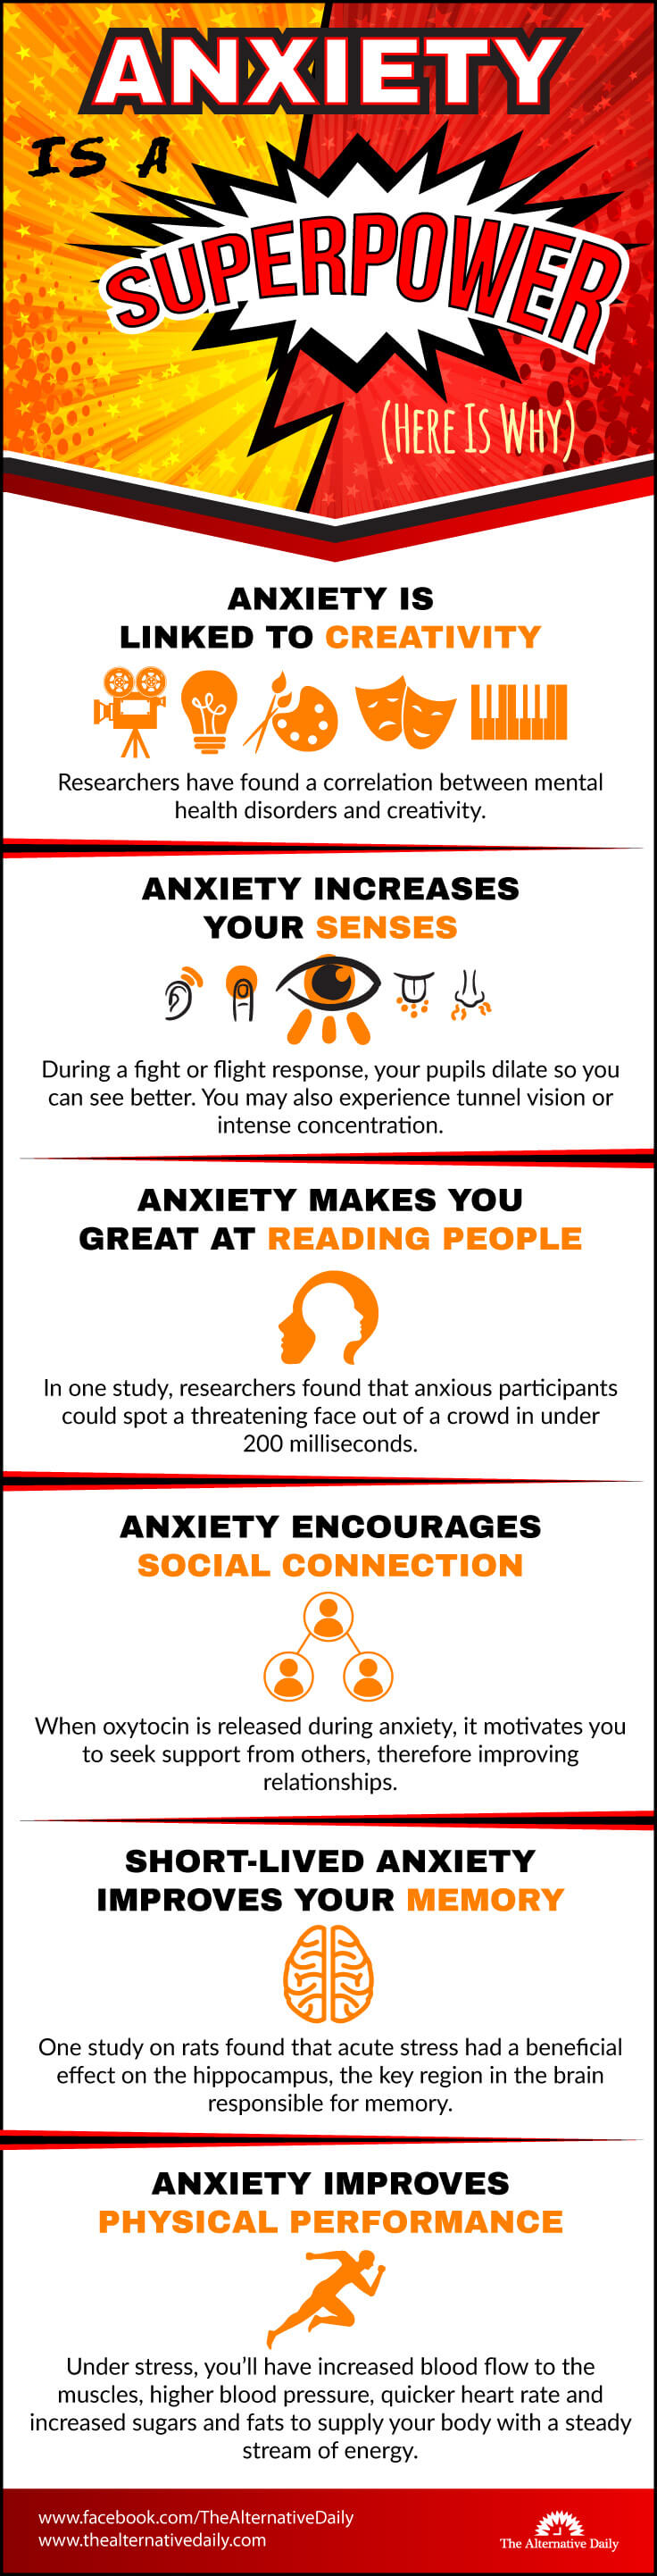 Anxiety Is A Superpower (Here Is Why)